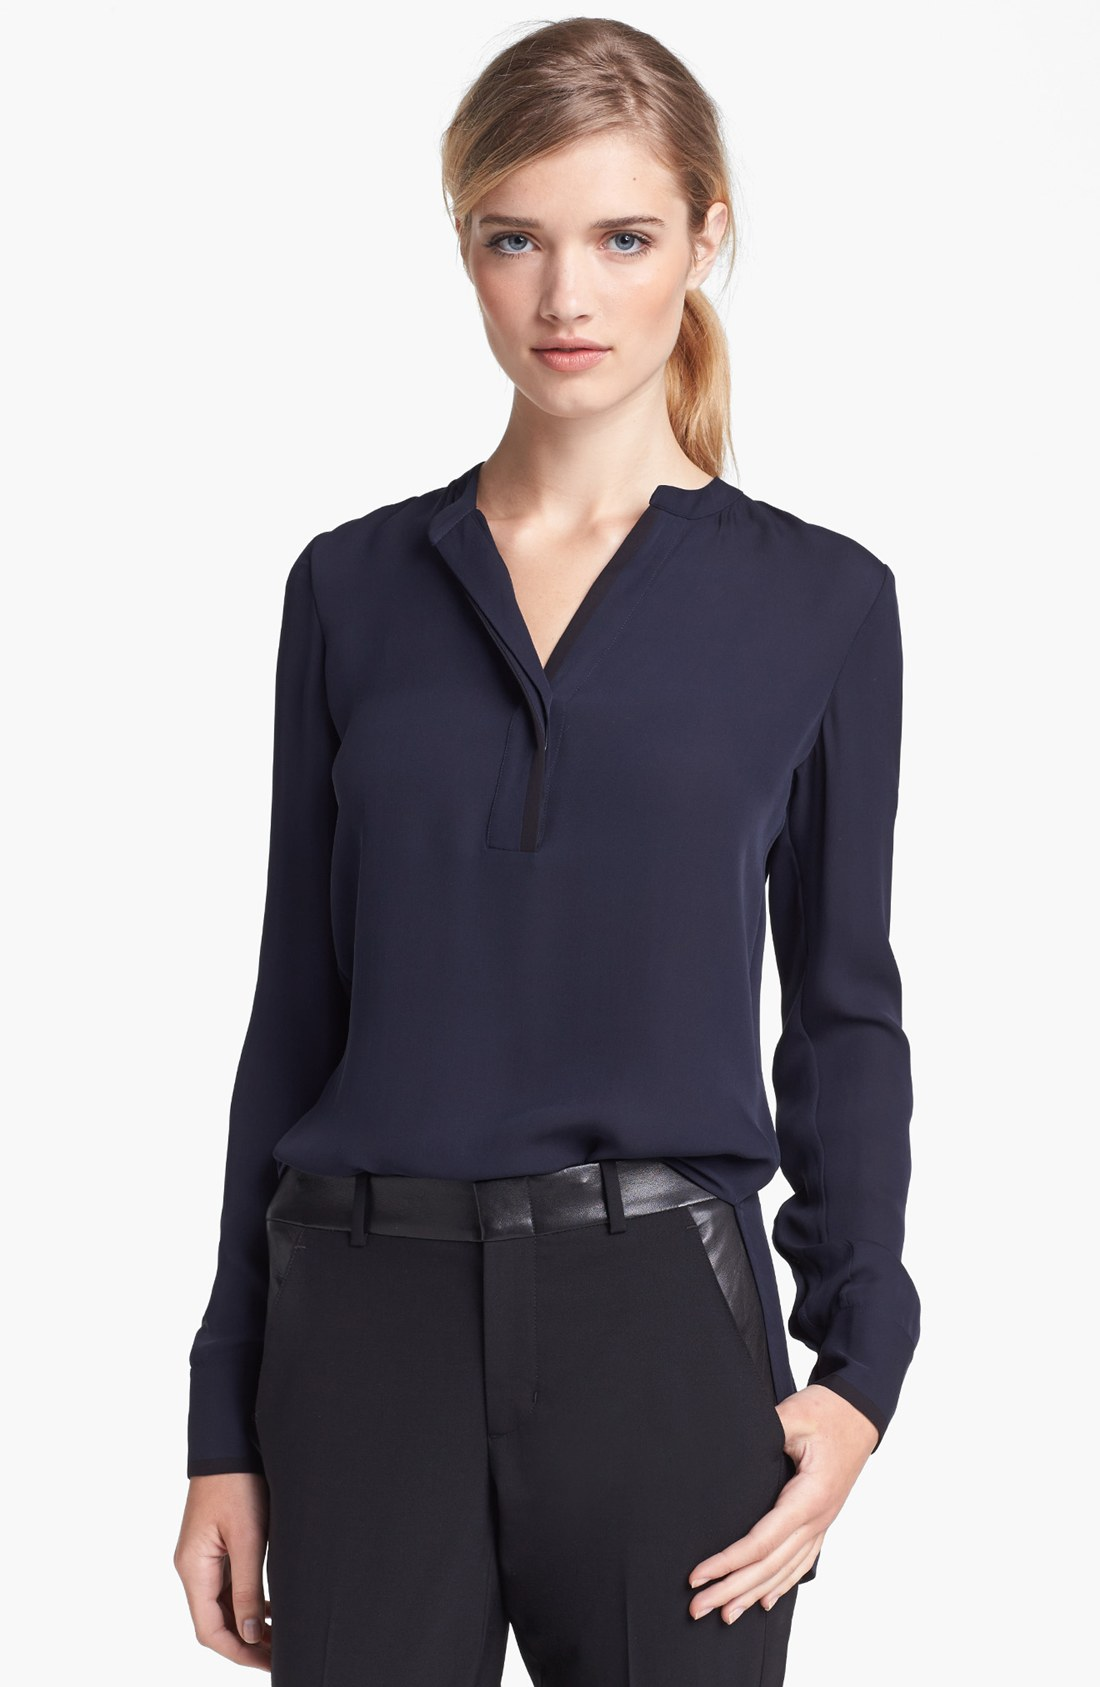 The ladies Hostess Satin Blouse from Sharper Uniforms conveys a high-end look that's polished, yet understated. It includes a button-down front, faux enamel buttons and a gentle collar. The long sleeve satin blouse is flattering on a variety of body types and offers maximum comfort with lightweight, breathable materials.